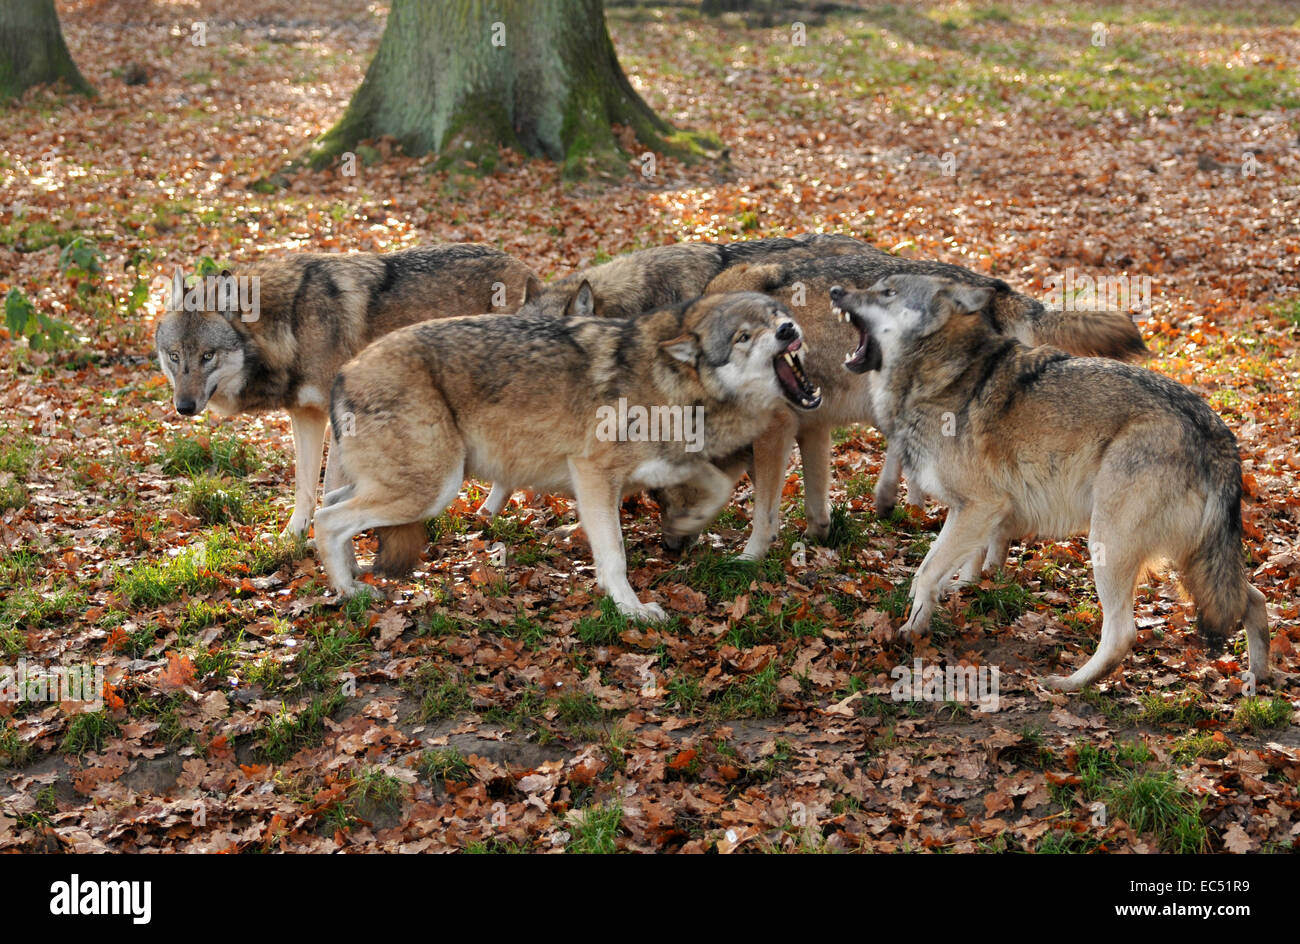 Dispute in the wolf pack - Stock Image